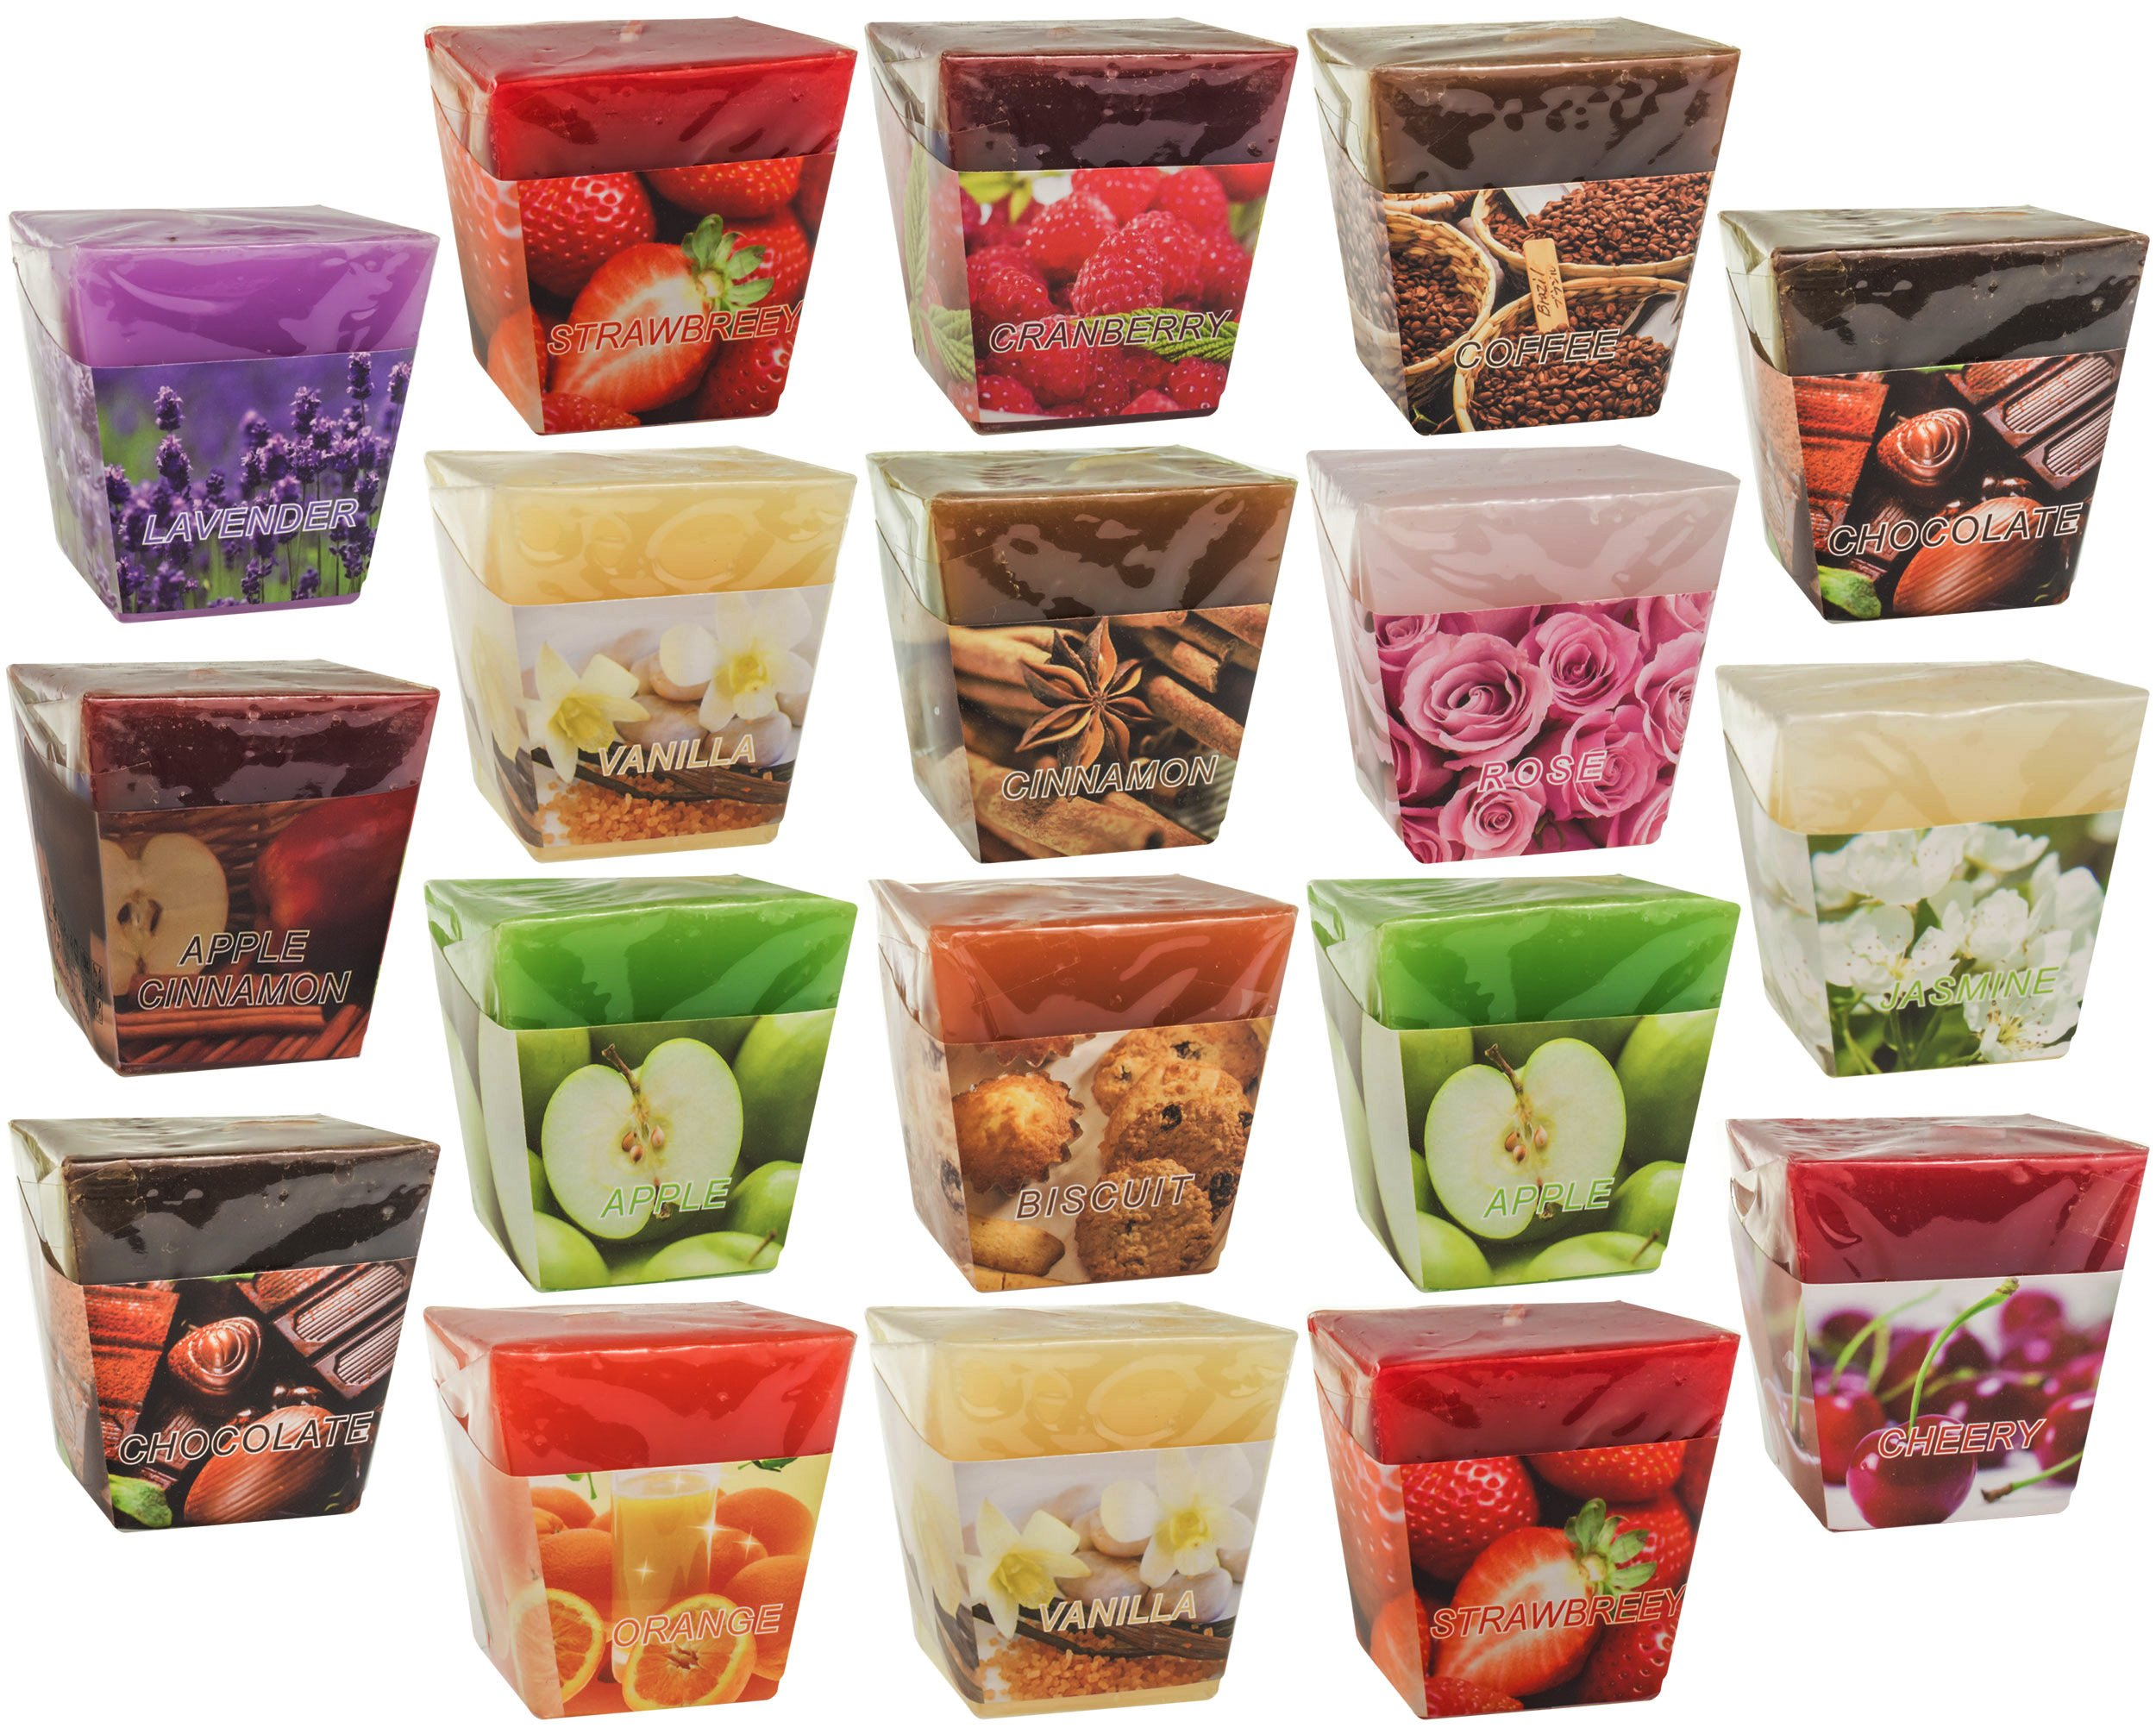 All2shop Scented Votive Candles Set of 18 Assorted Pure Scents for Relaxation & Aromatherapy (18 Assorted Scents, Normal) by All2shop